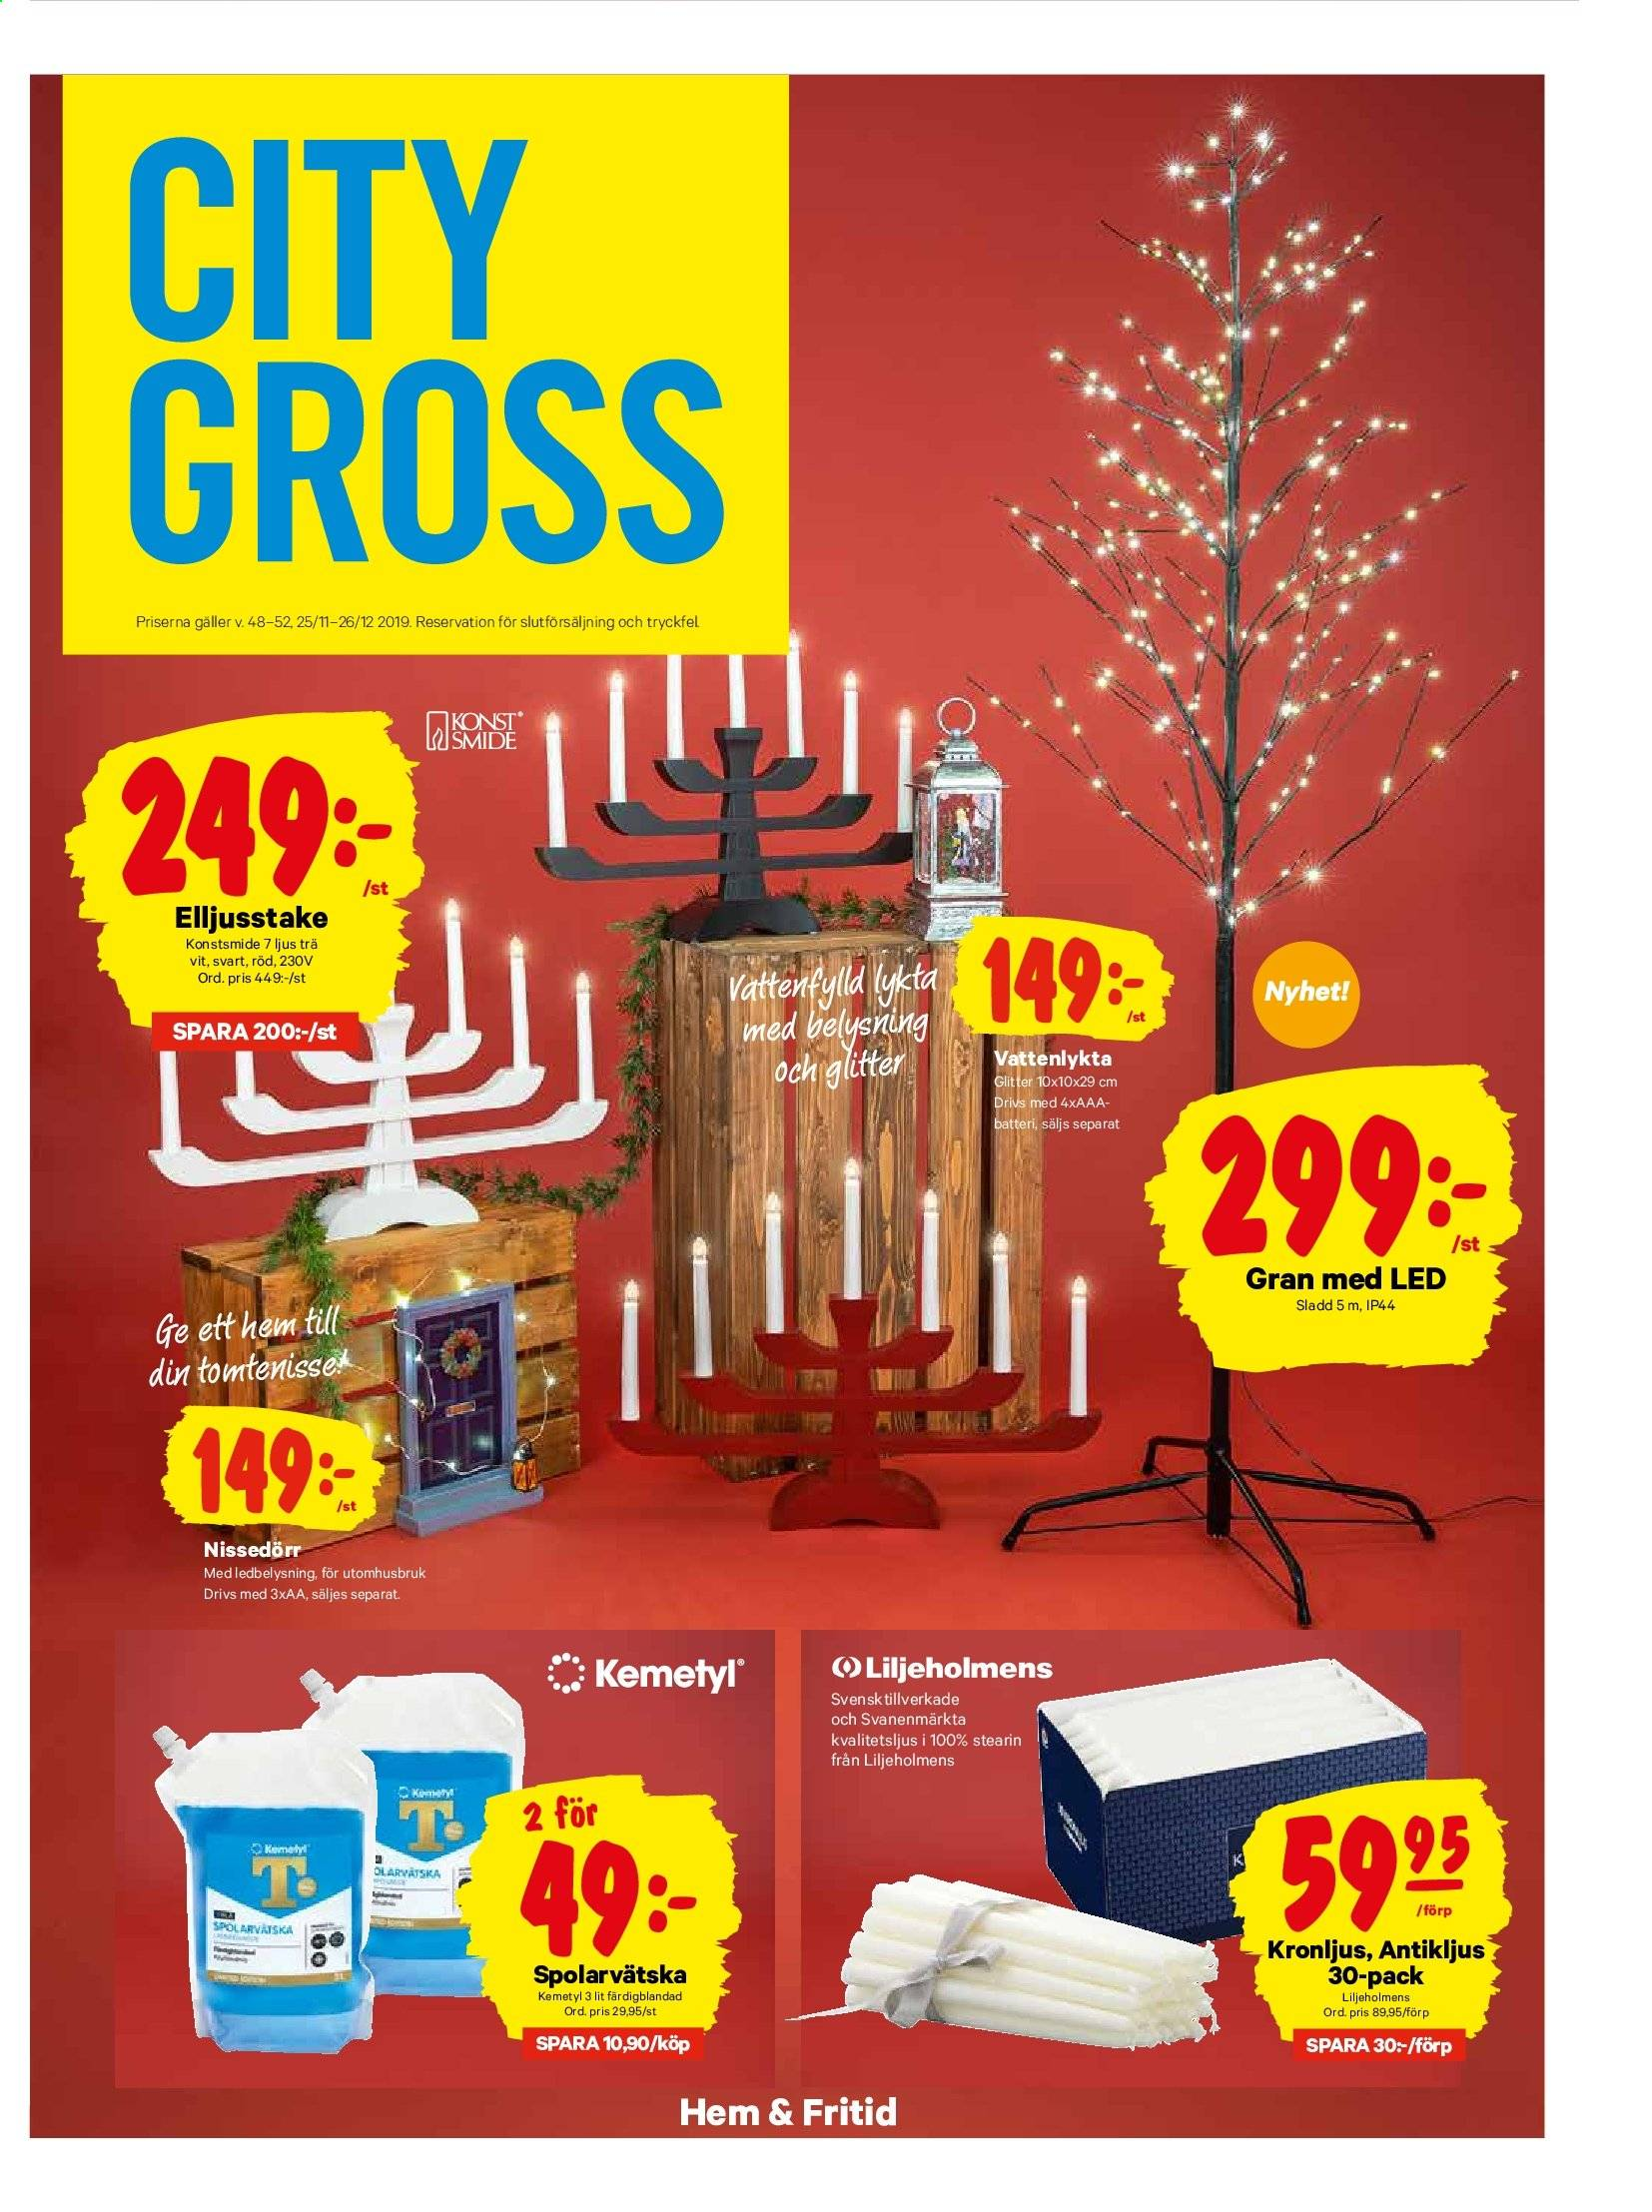 City Gross reklamblad - 25/11 2019 - 1/12 2019. Sida 14.